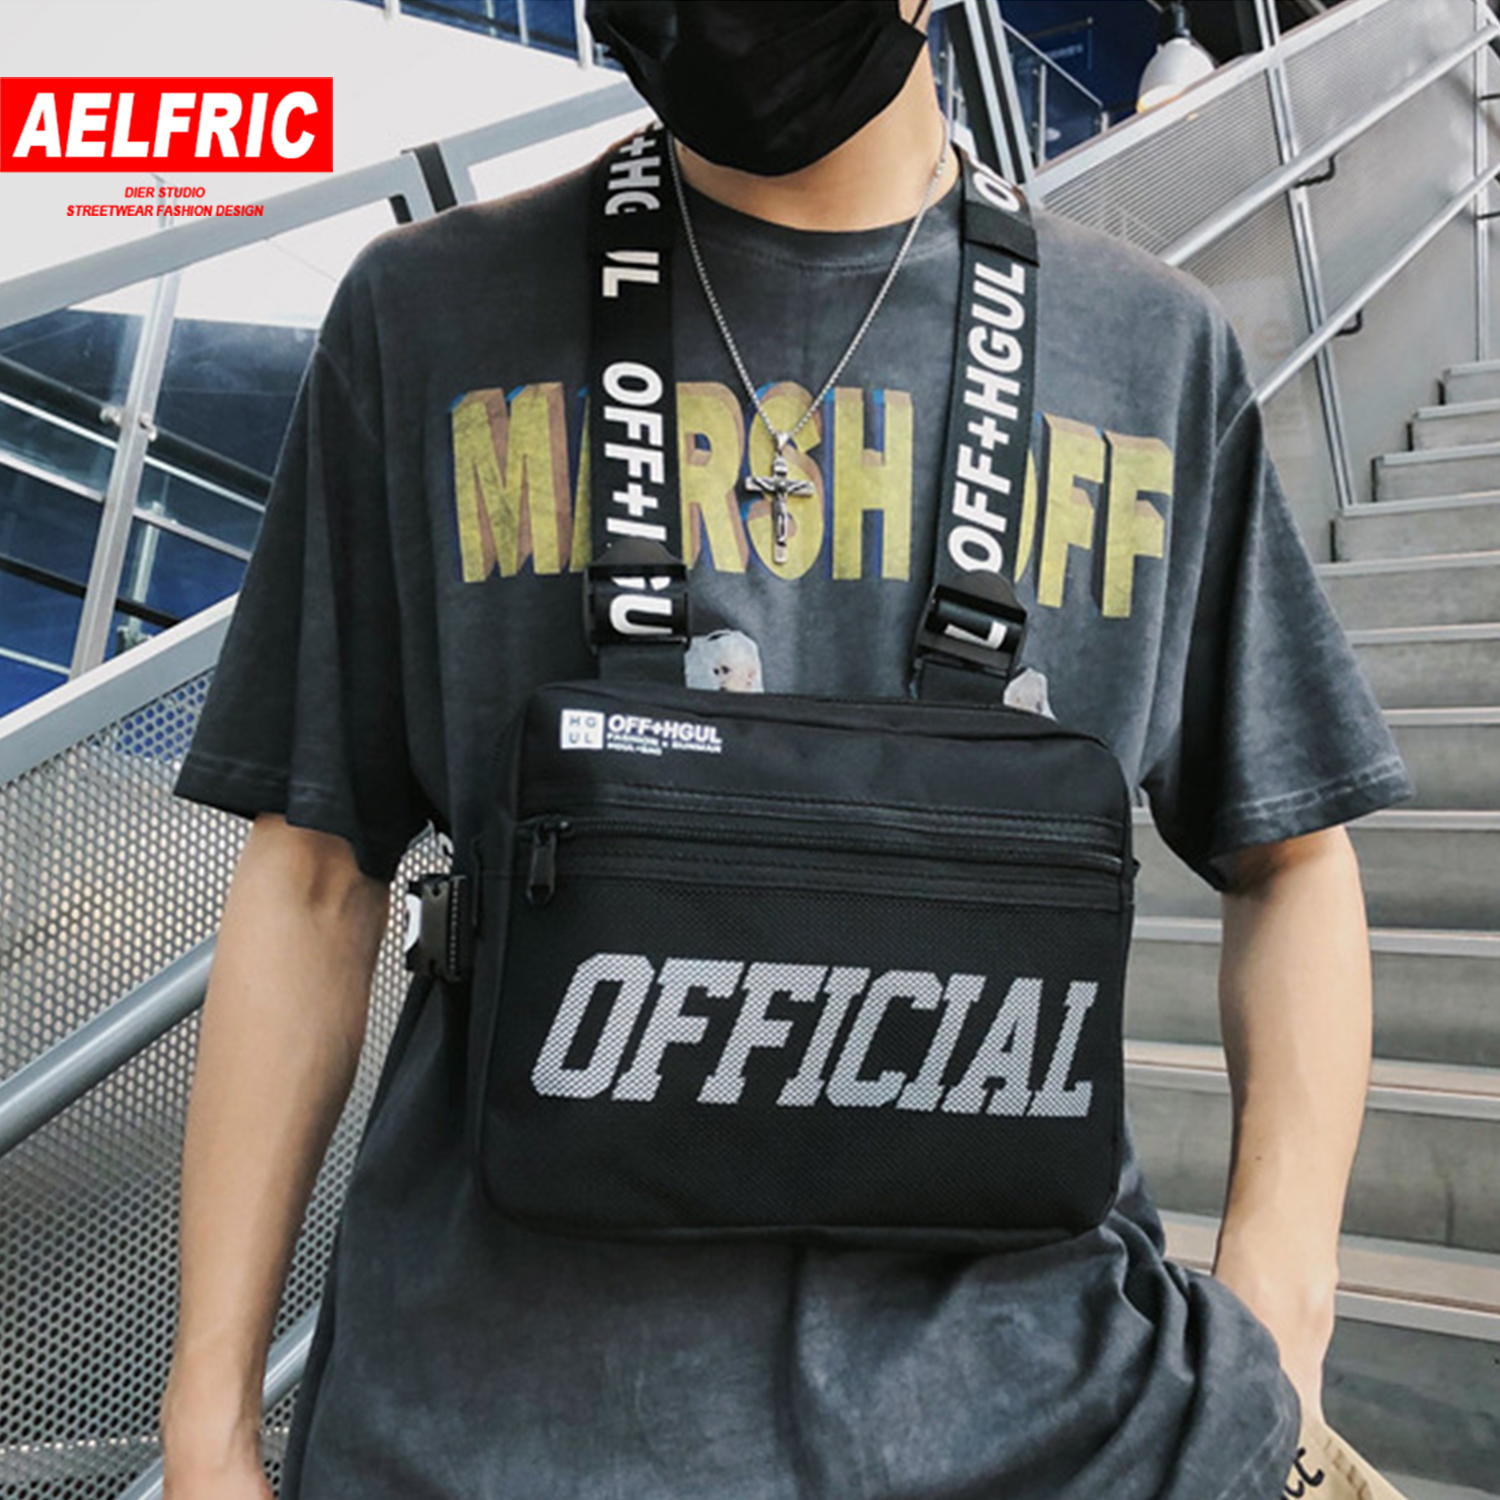 AELFRIC Streetwear Tactical Vest Hip Hop Style Crossbody Chest Bags Pack Men Women 2019 Fashion Solid Punck Waist Bag Fanny Pack